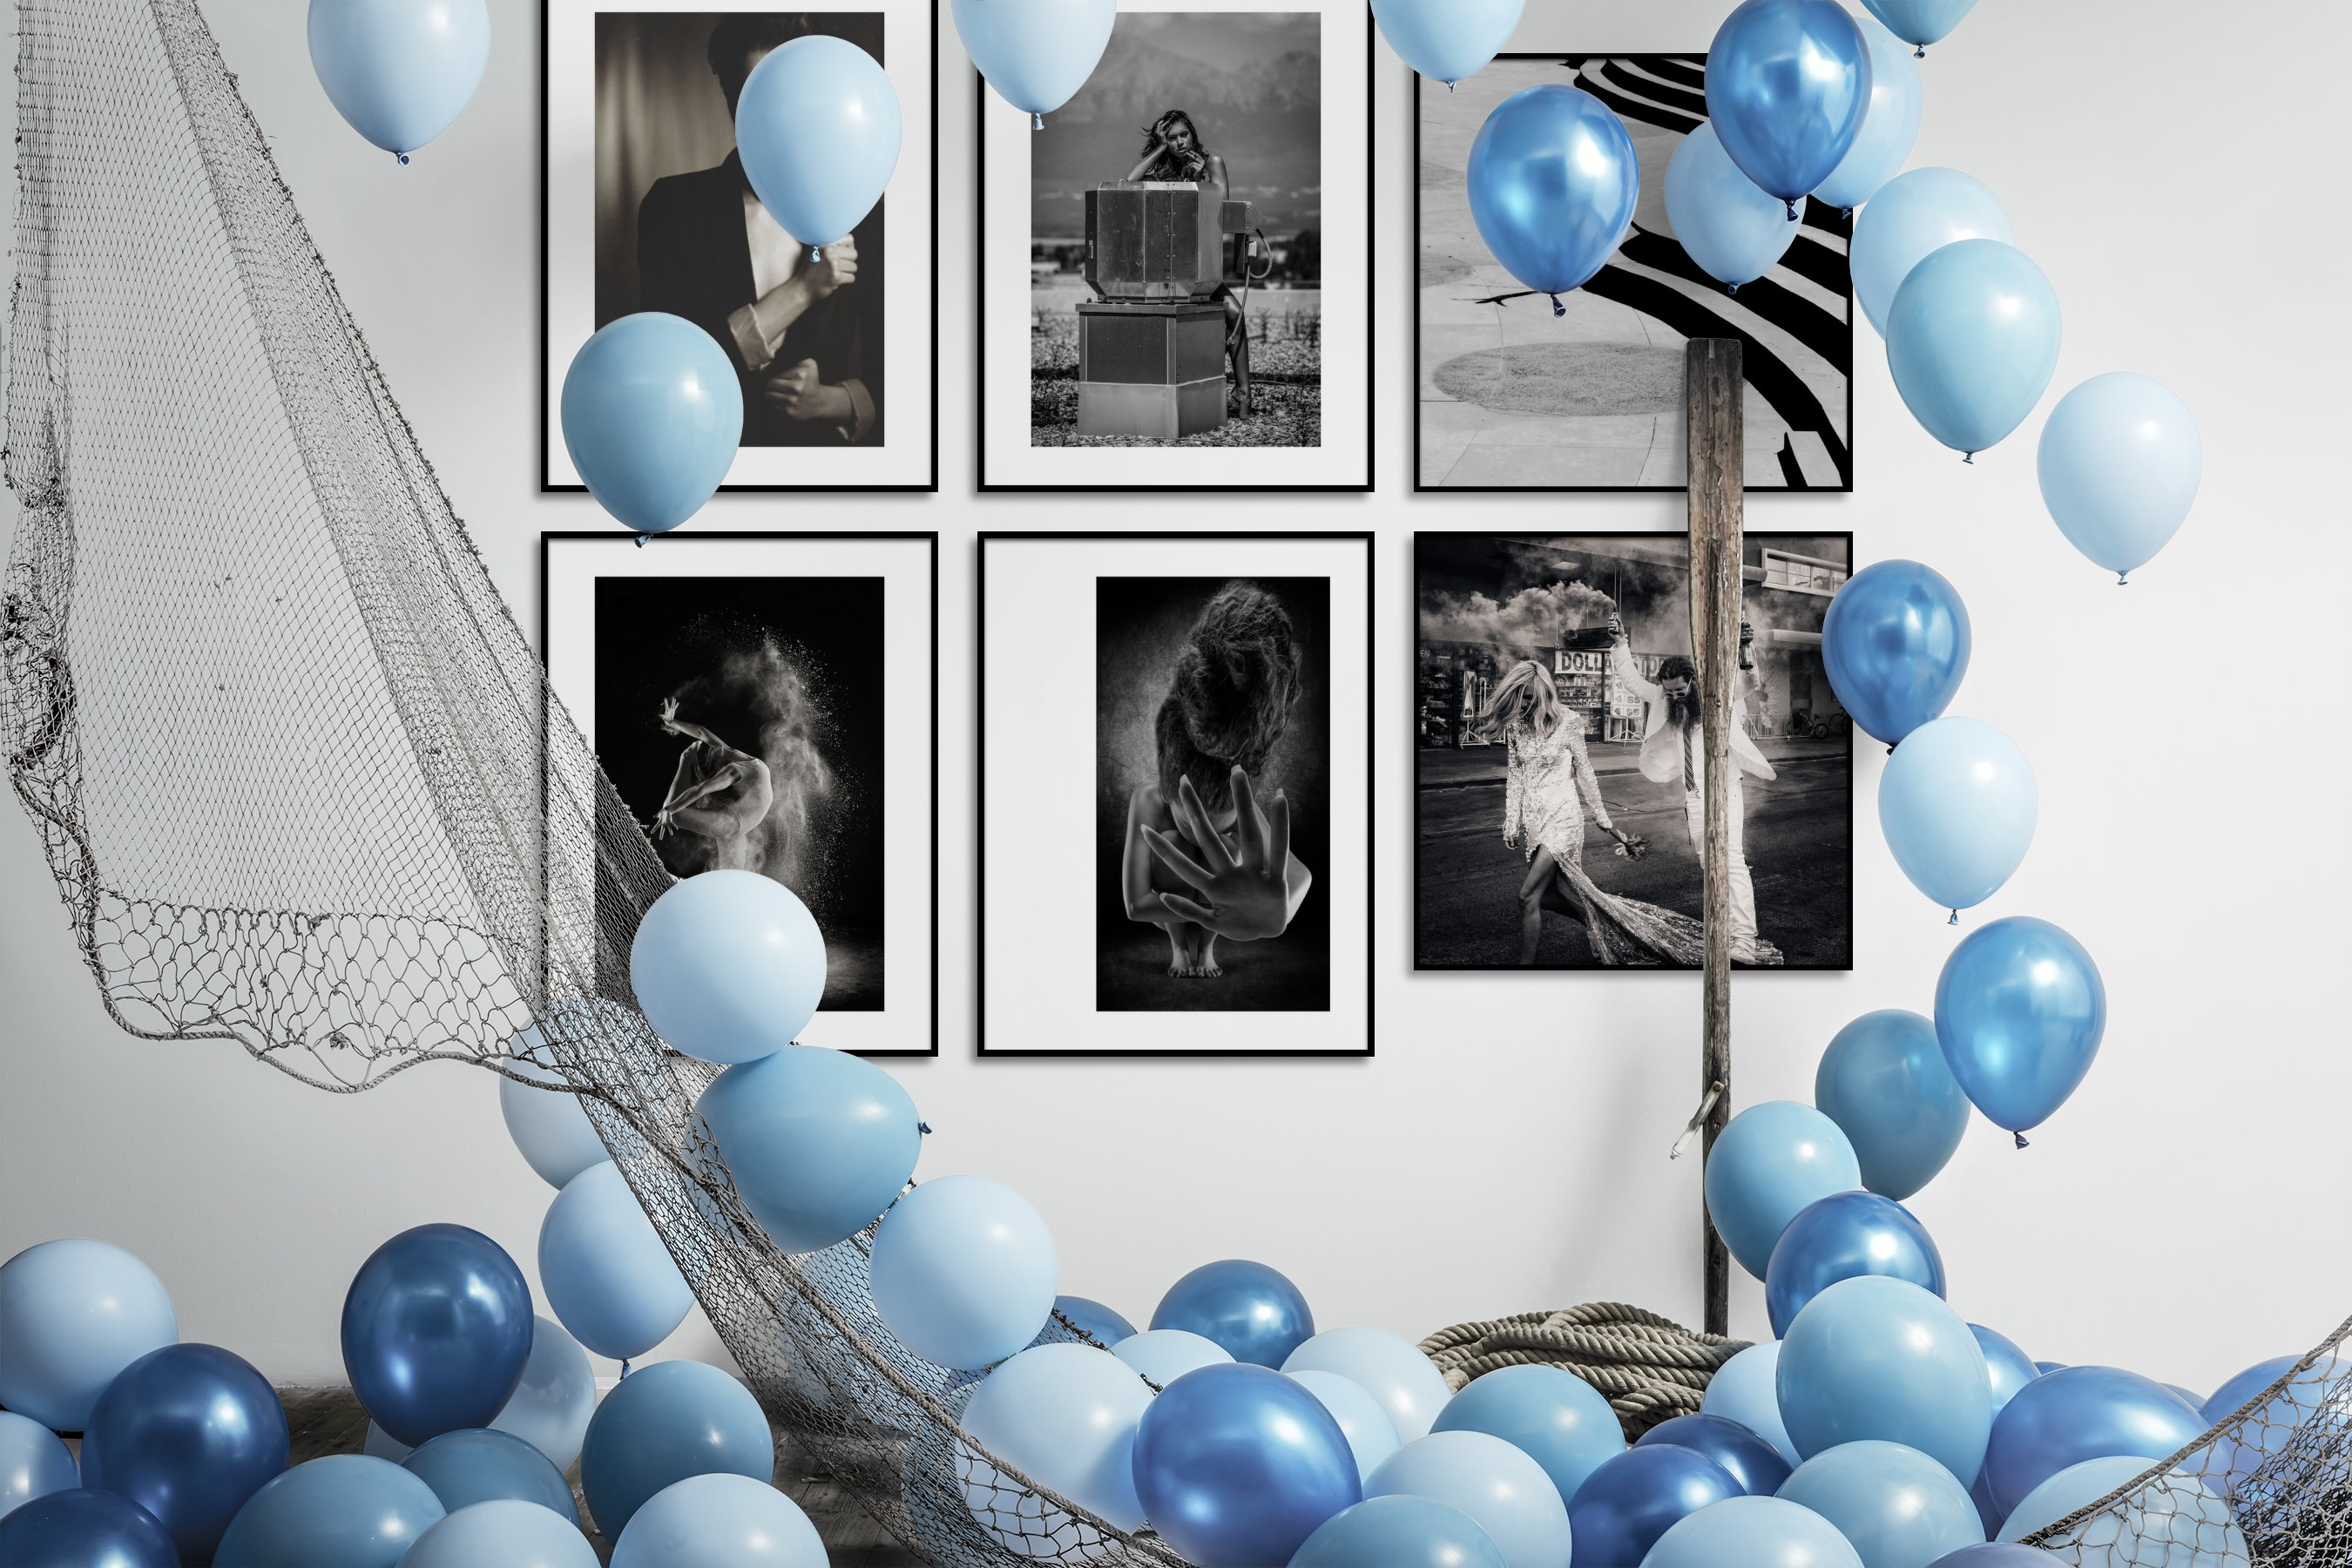 Gallery wall idea with six framed pictures arranged on a wall depicting Fashion & Beauty, Black & White, Vintage, For the Moderate, and City Life